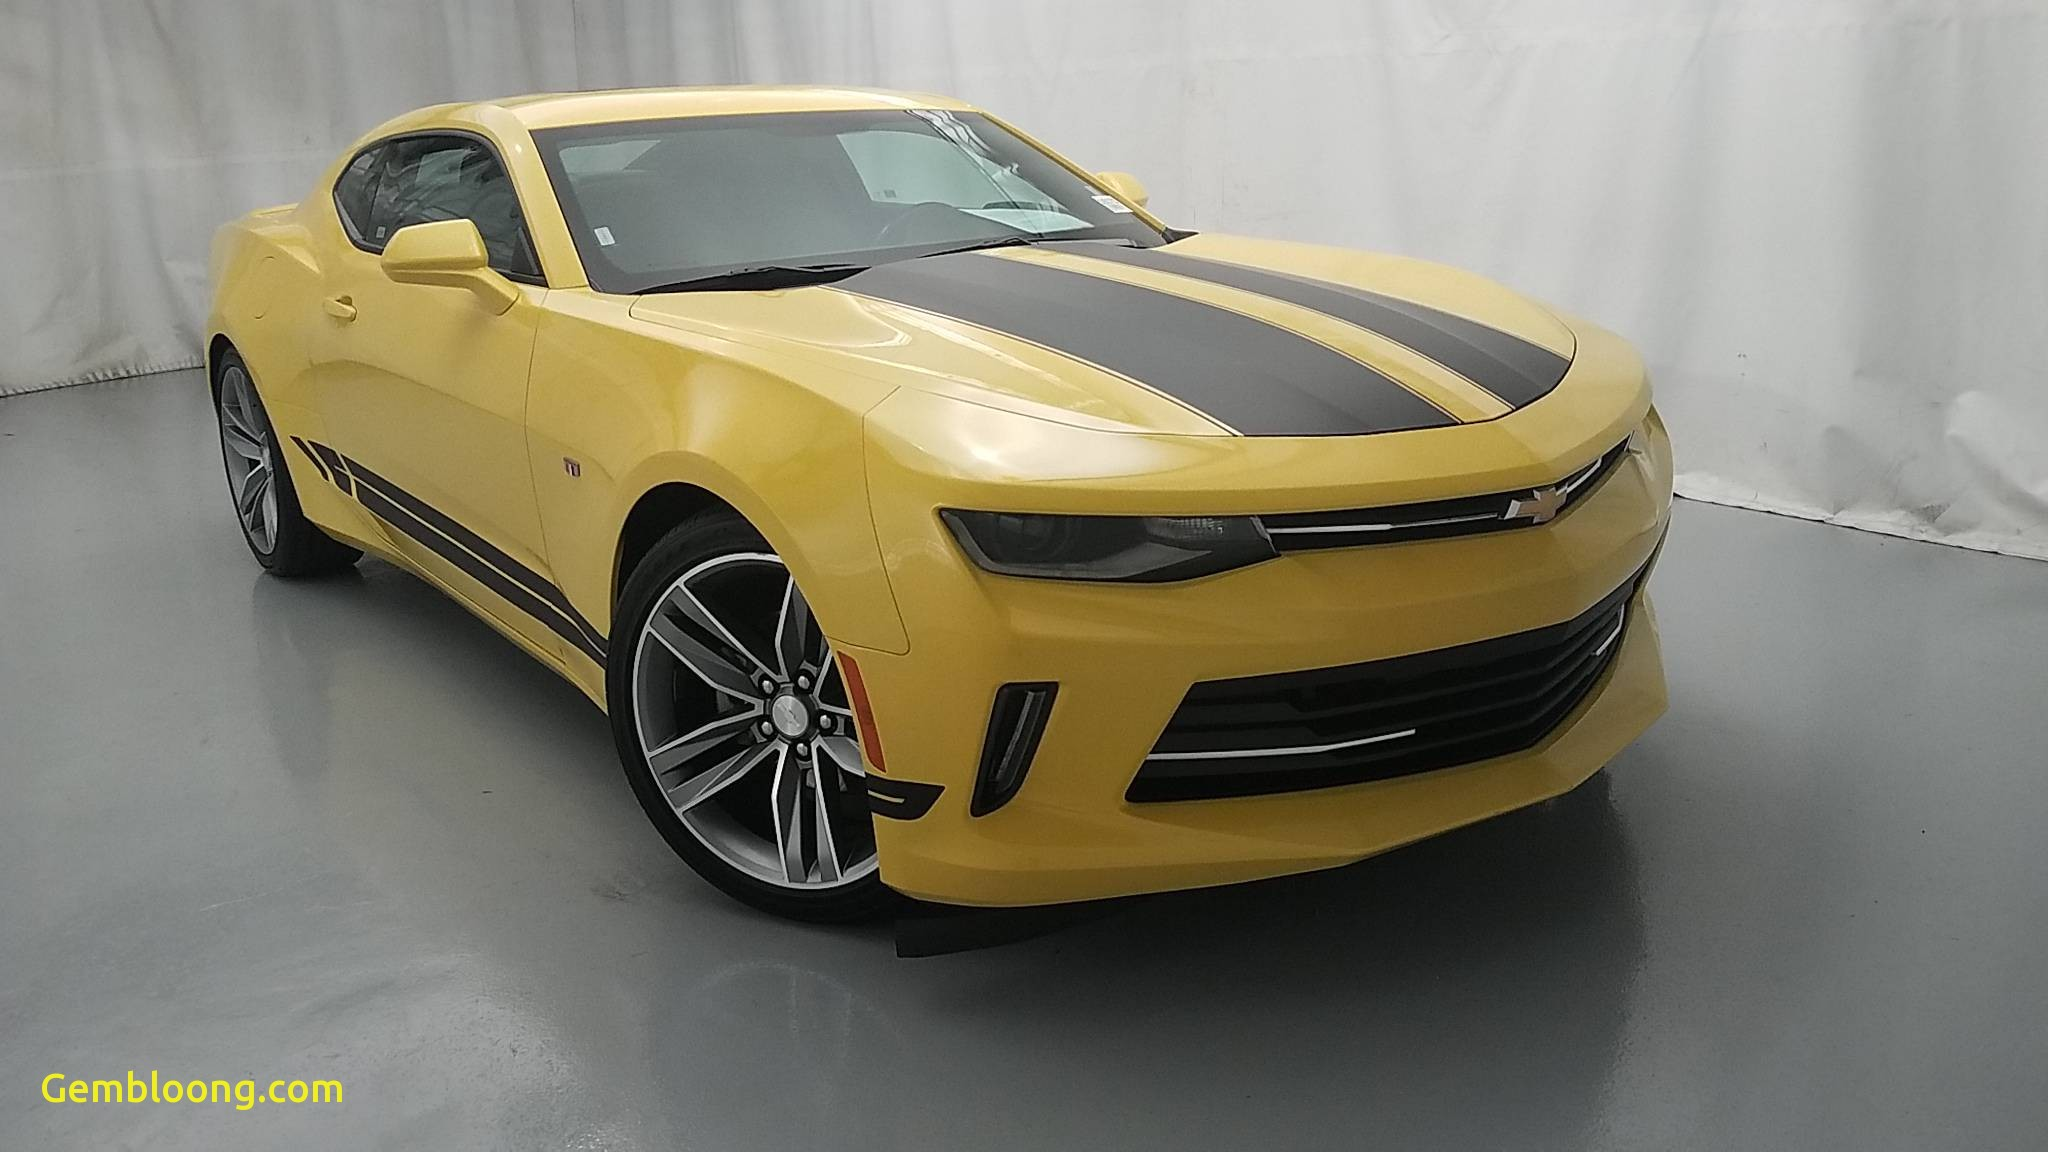 cars for sale near me under 600 new reliable auto sales used cars dealership in las vegas nv. Black Bedroom Furniture Sets. Home Design Ideas